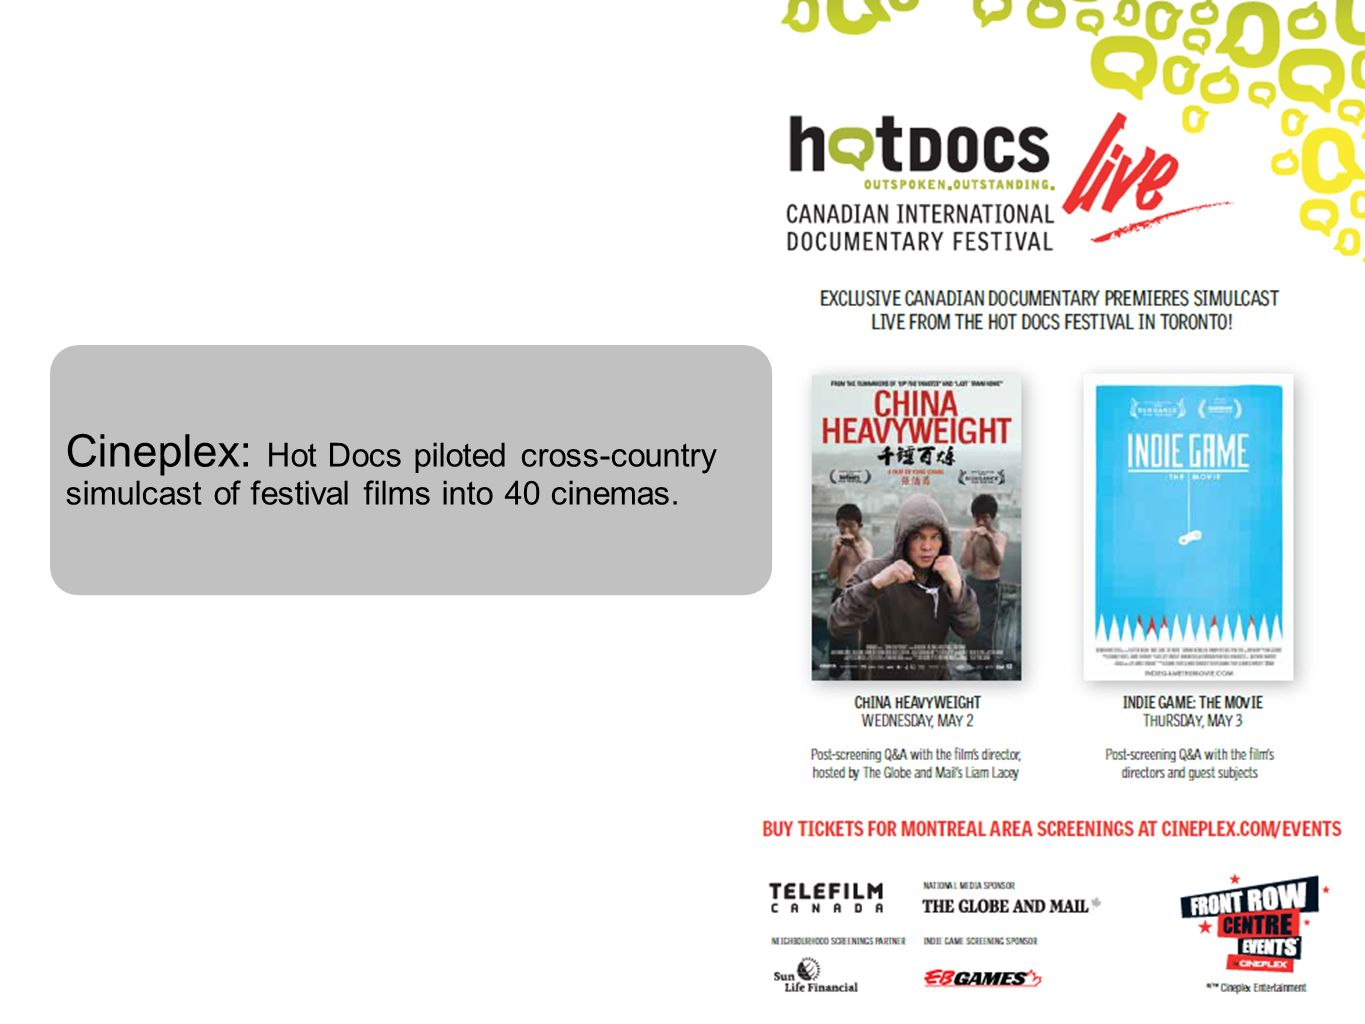 Cineplex: Hot Docs piloted cross-country simulcast of festival films into 40 cinemas.